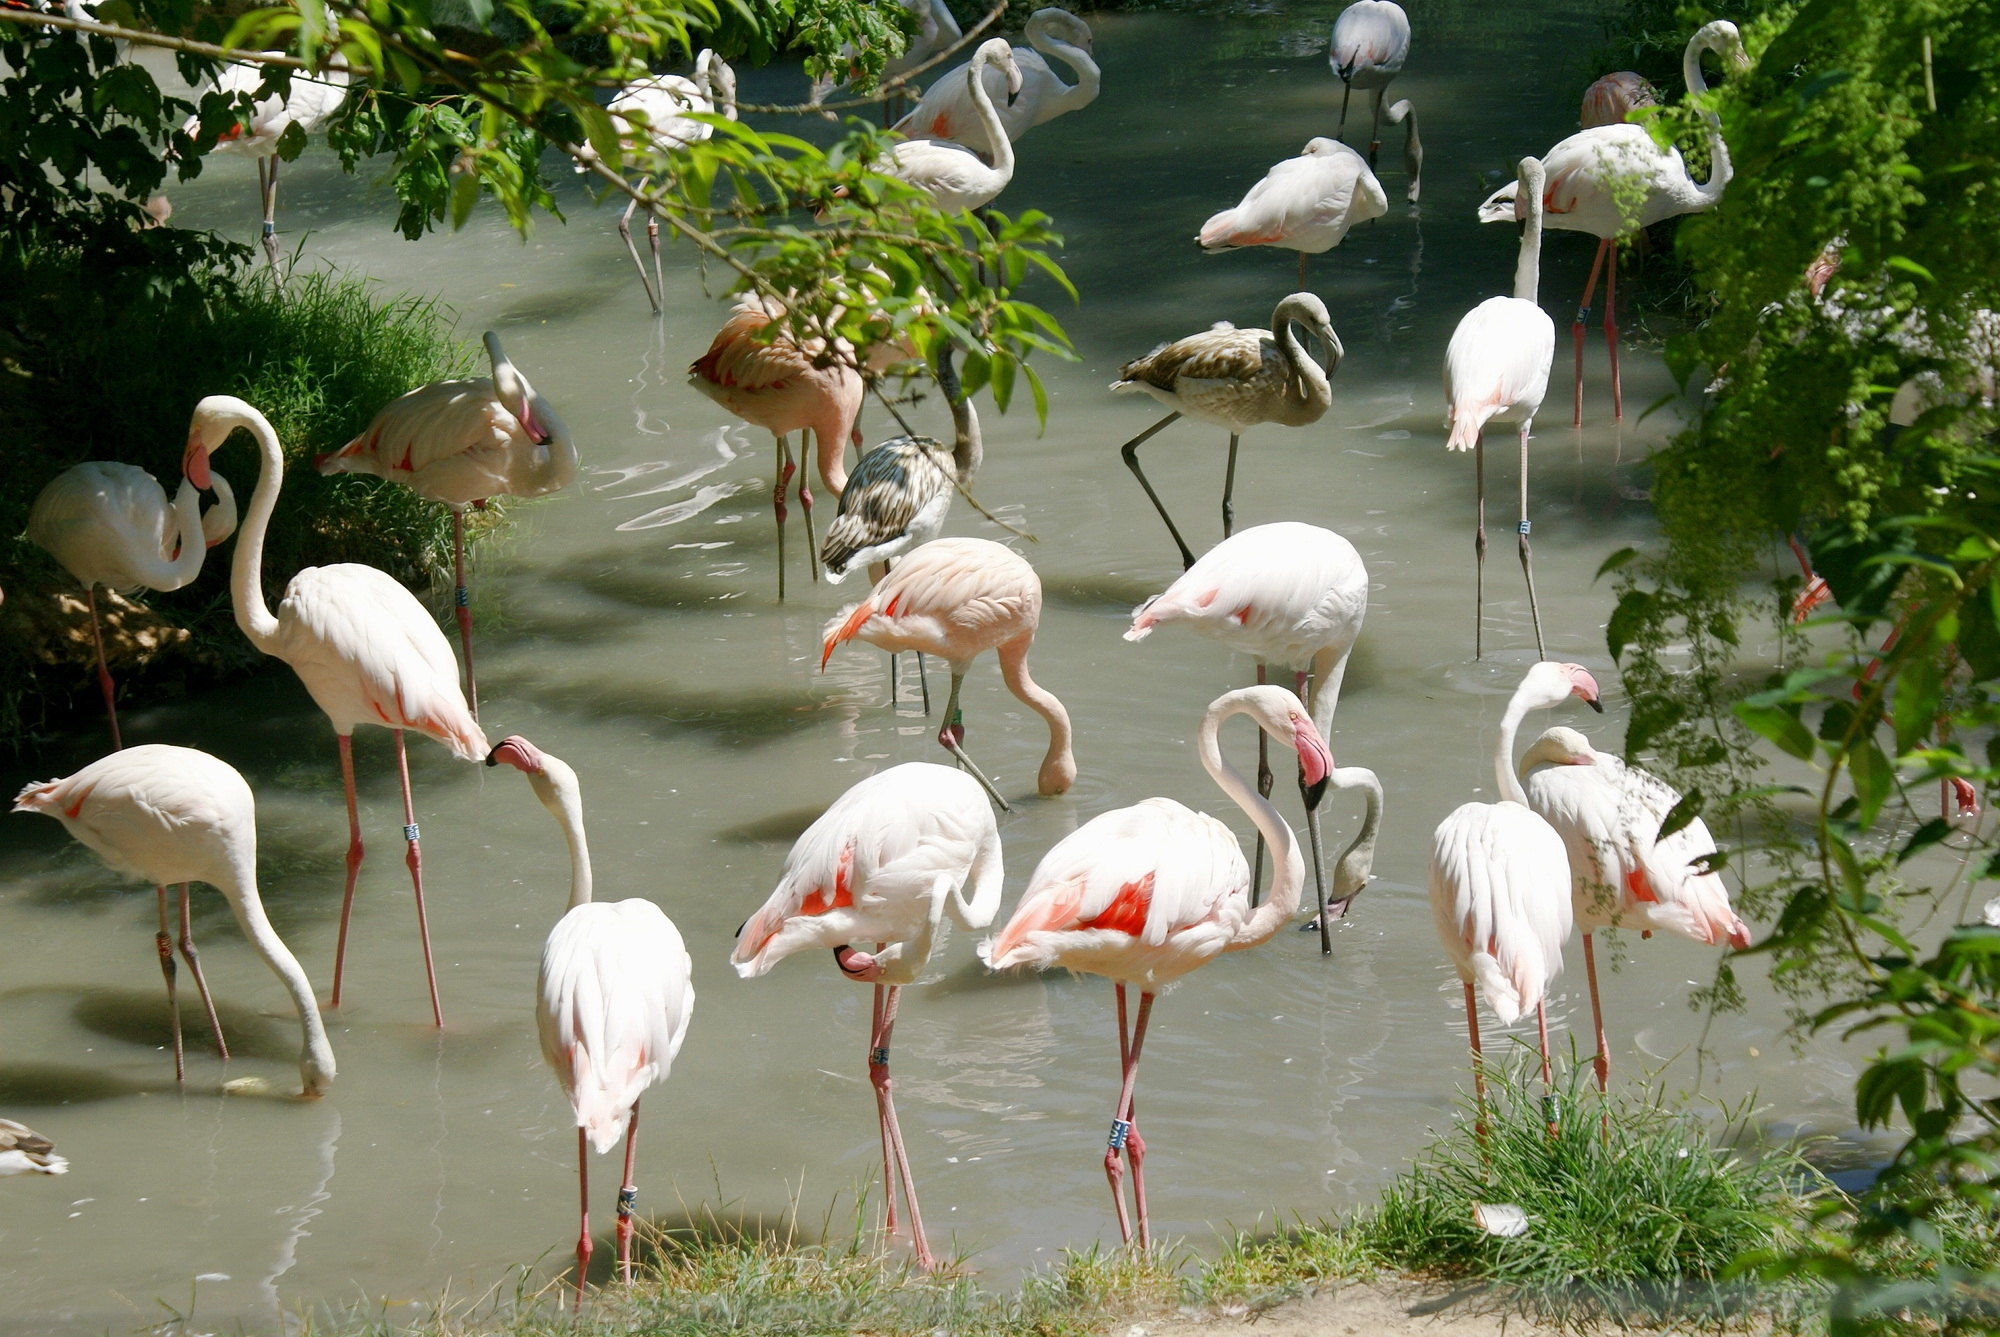 155434 download wallpaper Animals, Flamingo, Lots Of, Multitude, Water, Shore, Bank, Birds screensavers and pictures for free